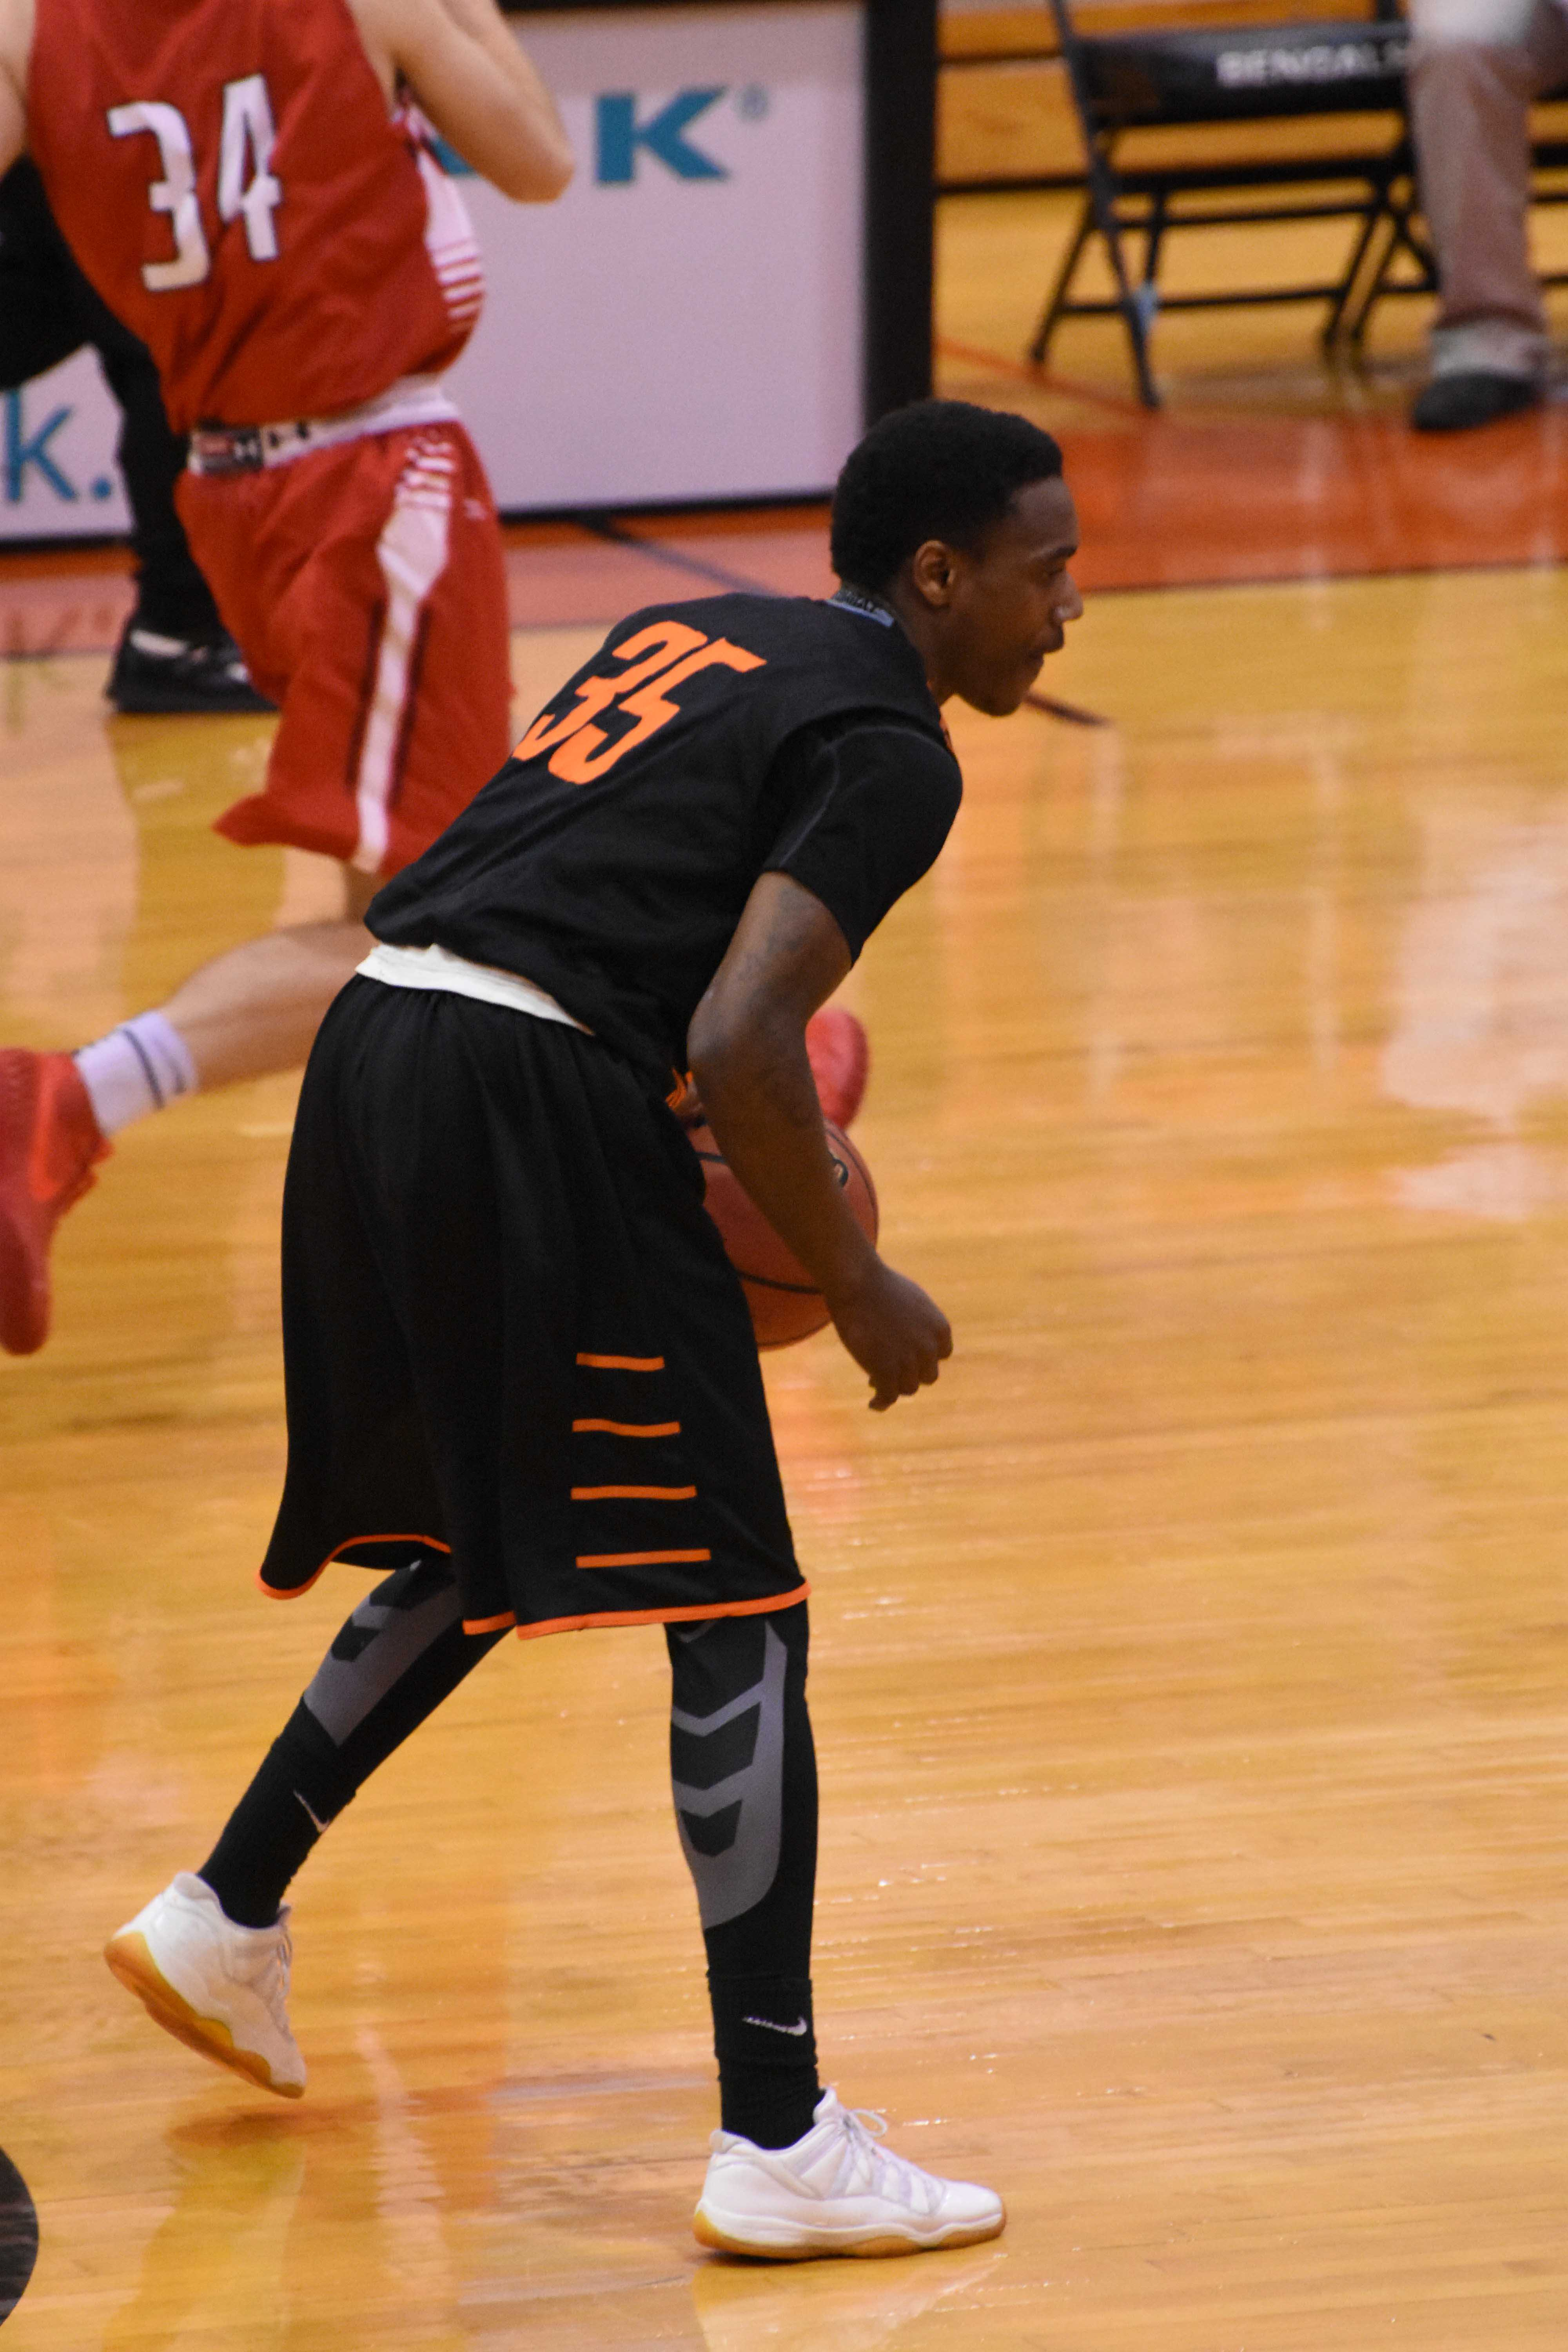 Senior Lovell Smith led the Bengals Tuesday with 18 points and nine rebounds in the win over Cortland.